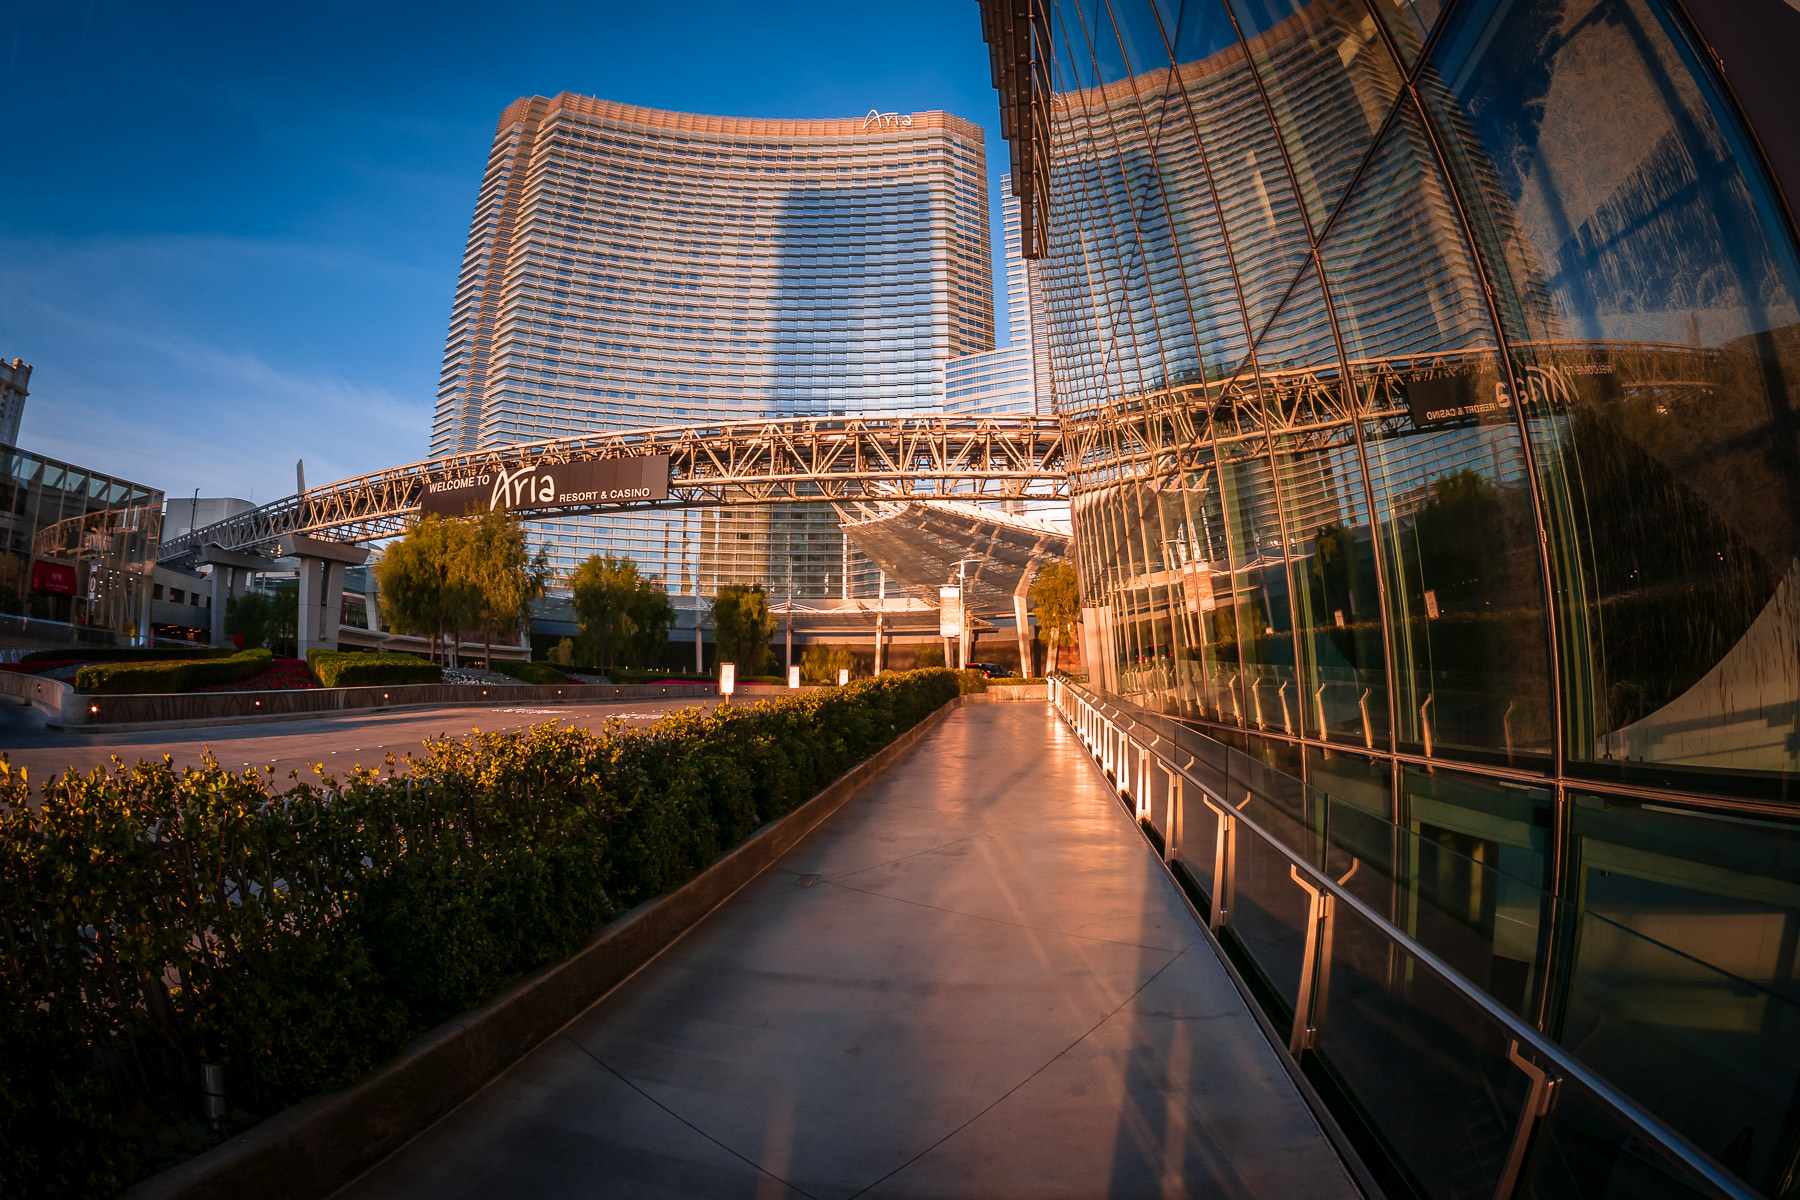 A sidewalk leads past the Veer Towers towards ARIA Resort & Casino at CityCenter, Las Vegas.